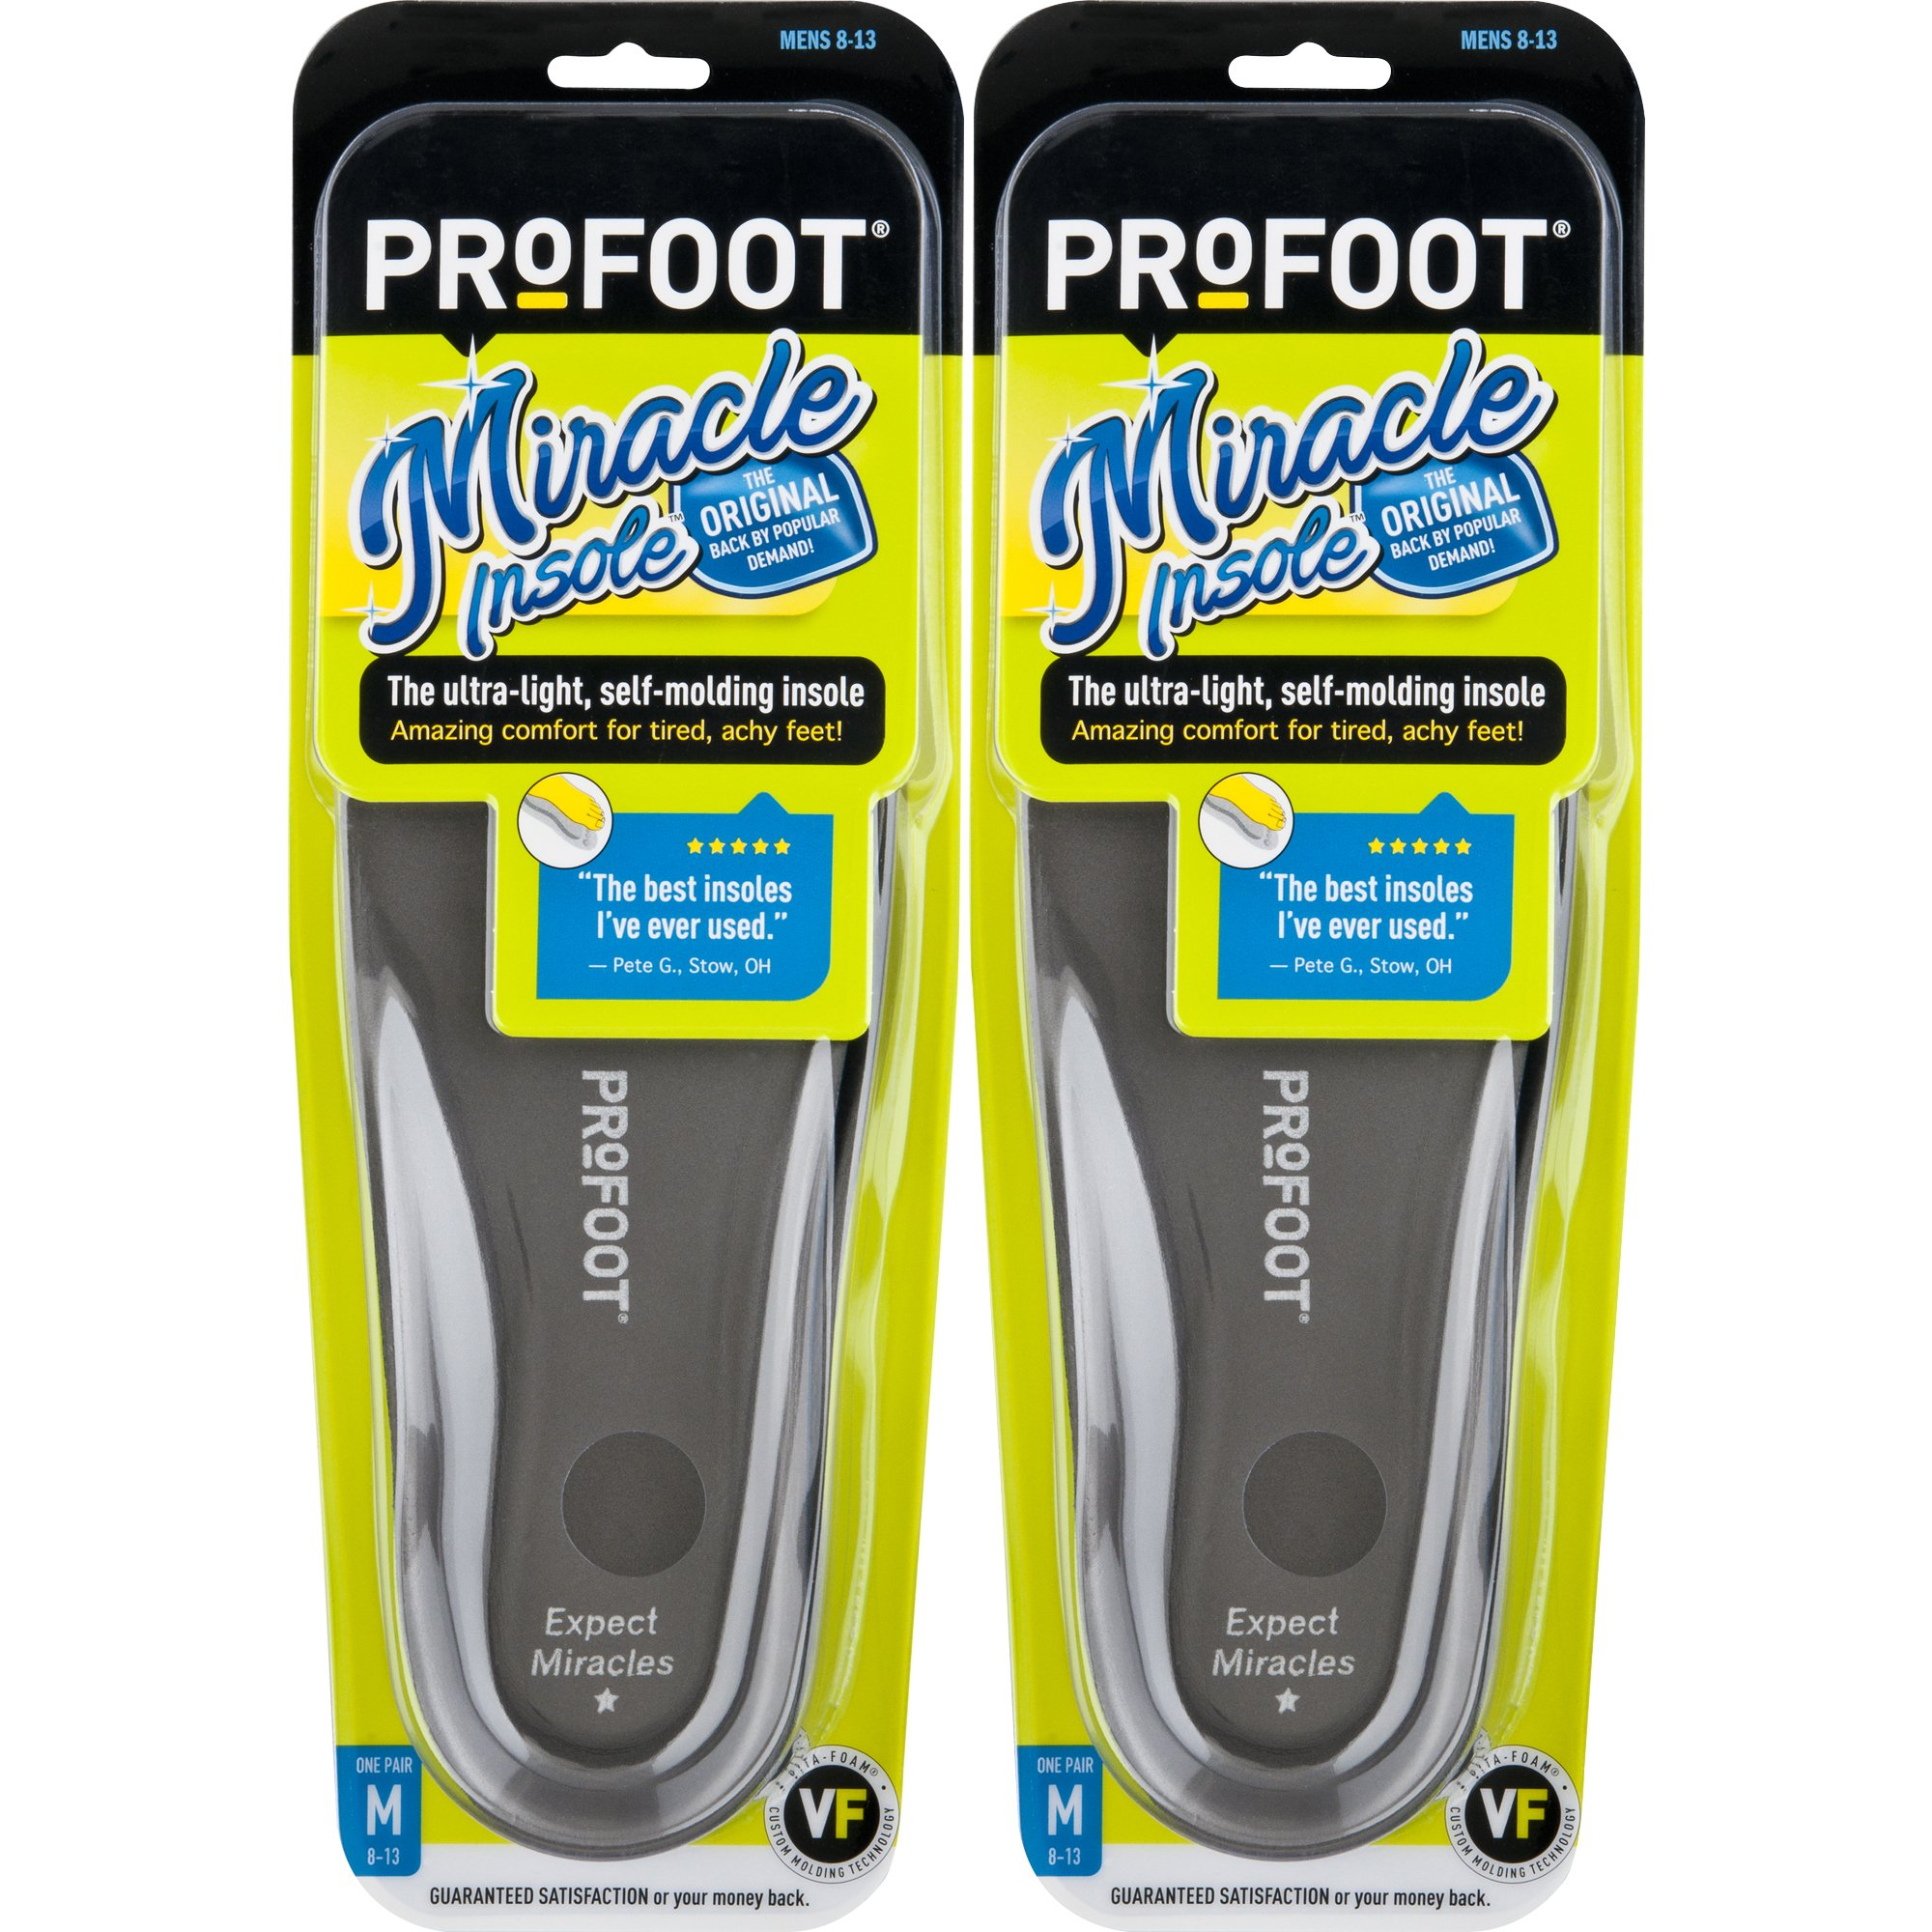 PROFOOT Original Miracle Insole, Men's 8-13, 2 Pair, 2-Layer Lightweight Insole with Memory-Foam Technology for Relief from Sore Feet and Aching Heels from Walking, Standing, Hiking